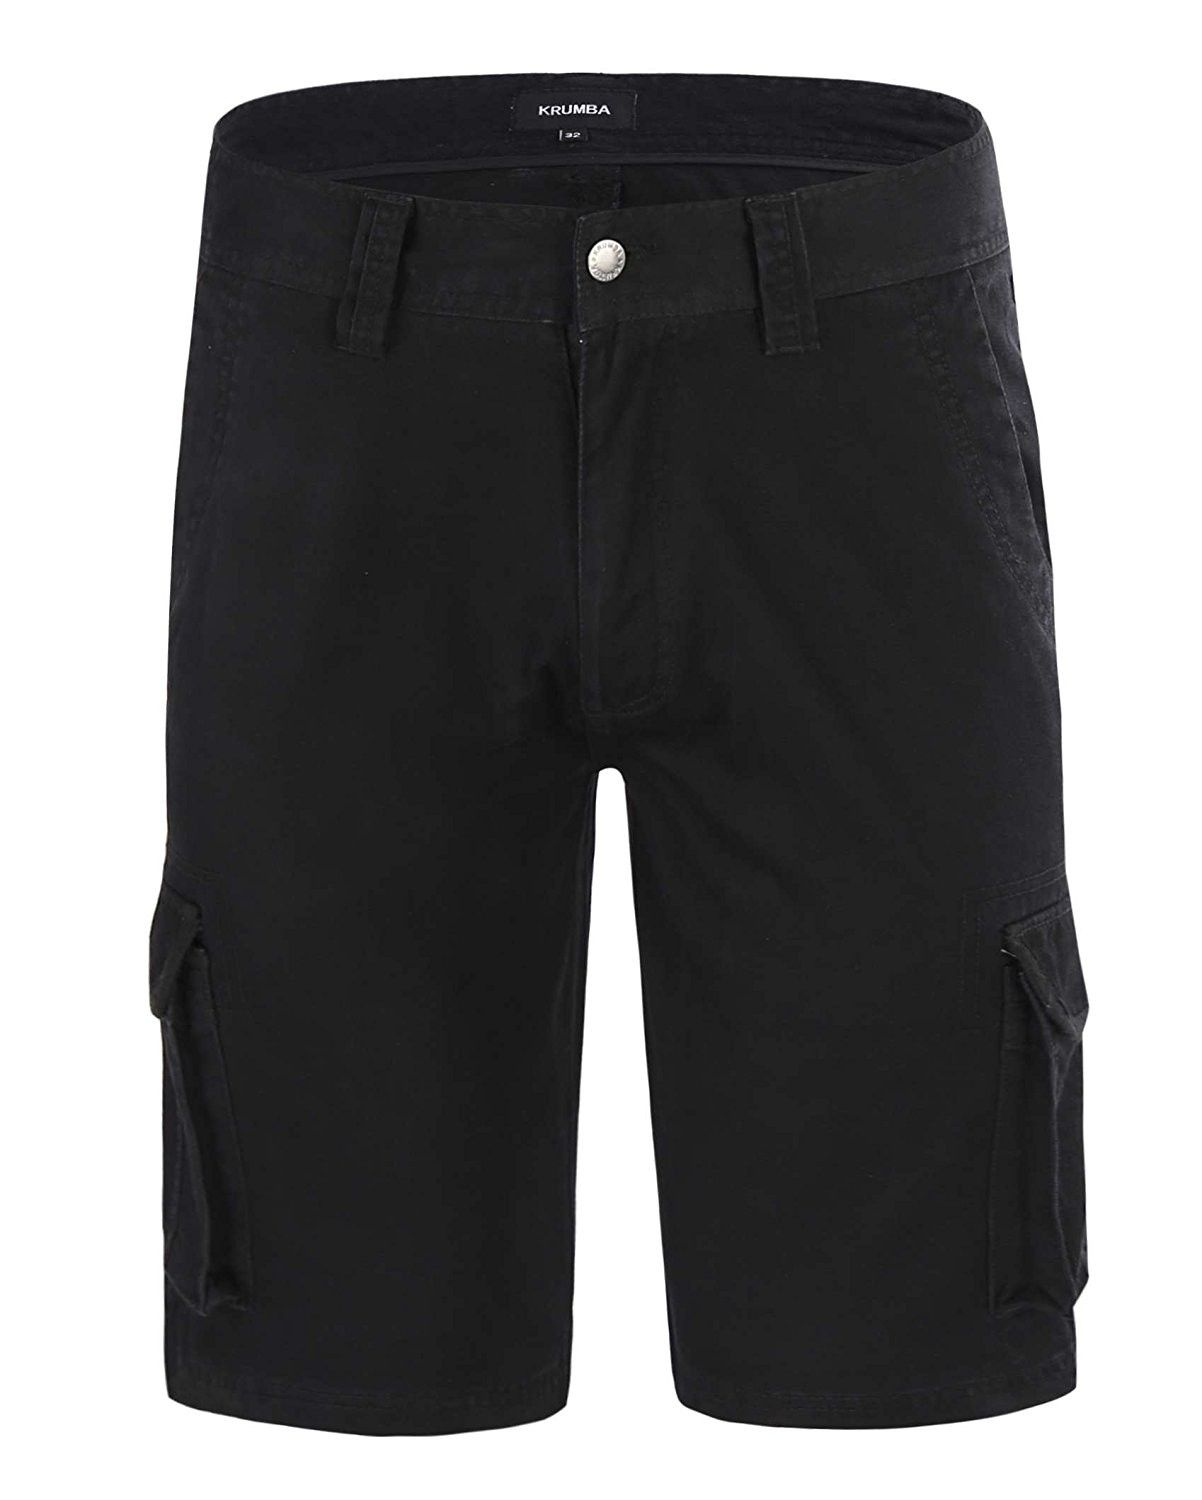 Krumba Mens Cotton Pigment Dyeing Outdoor Casual Cargo Shorts